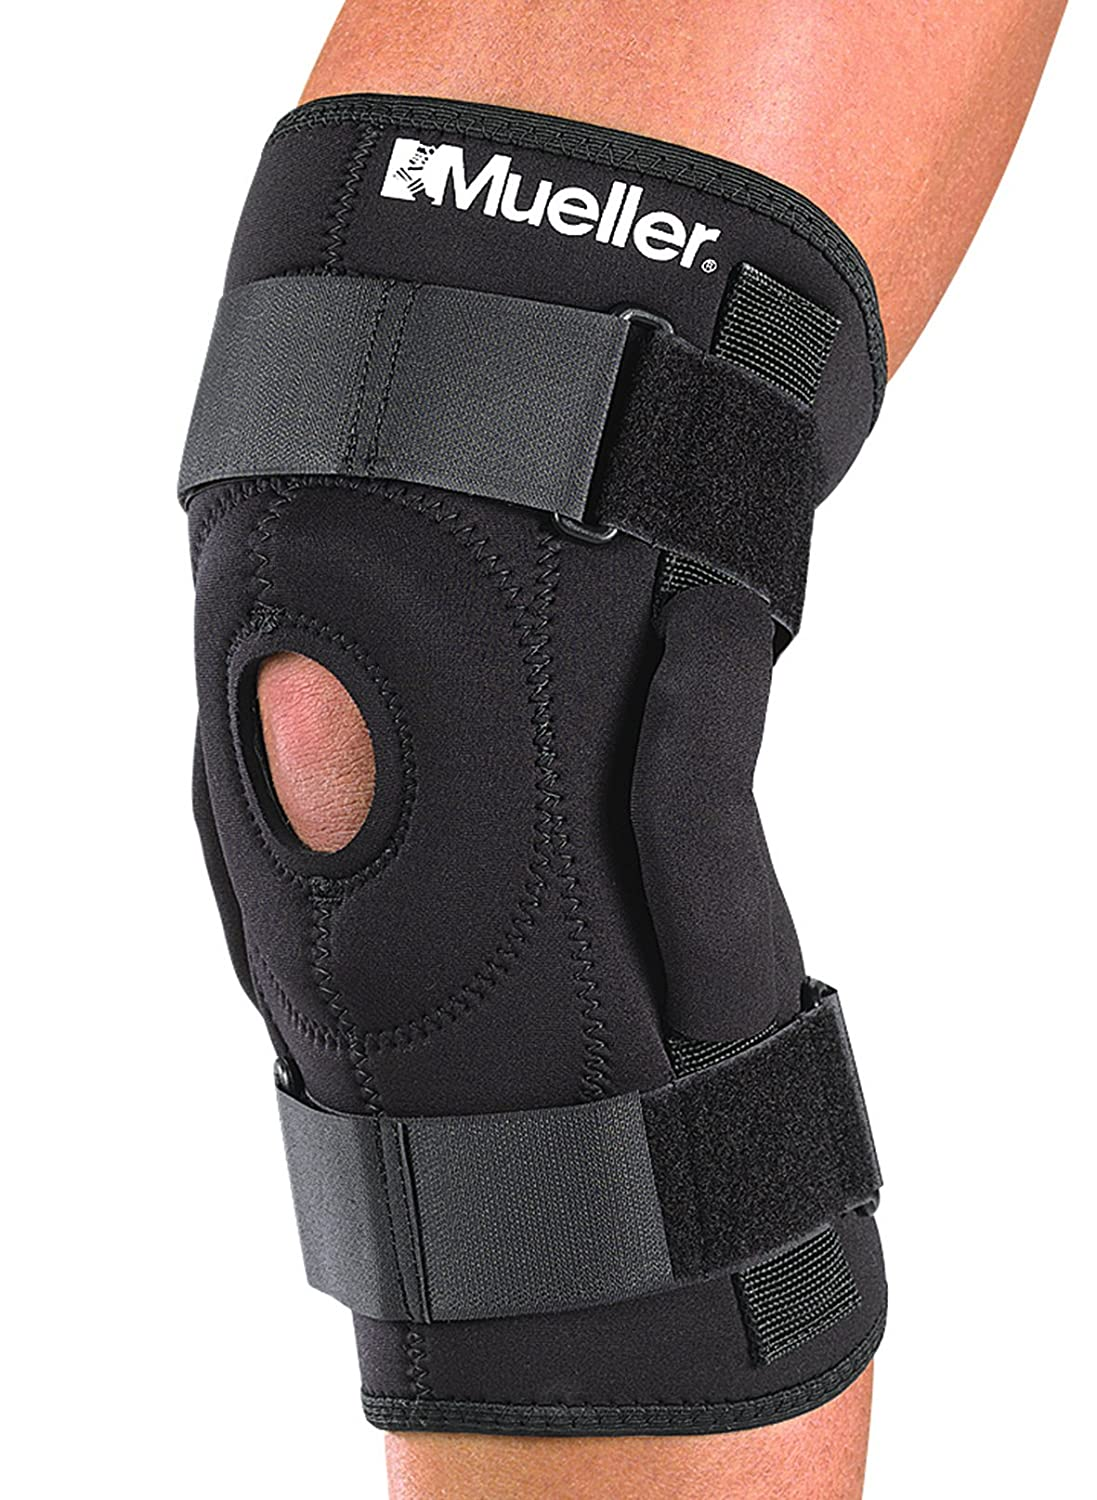 336d37c1a1 Patterson Medical Triaxial Mueller Hinged Knee Brace Size:40-45 cm:  Amazon.co.uk: Sports & Outdoors